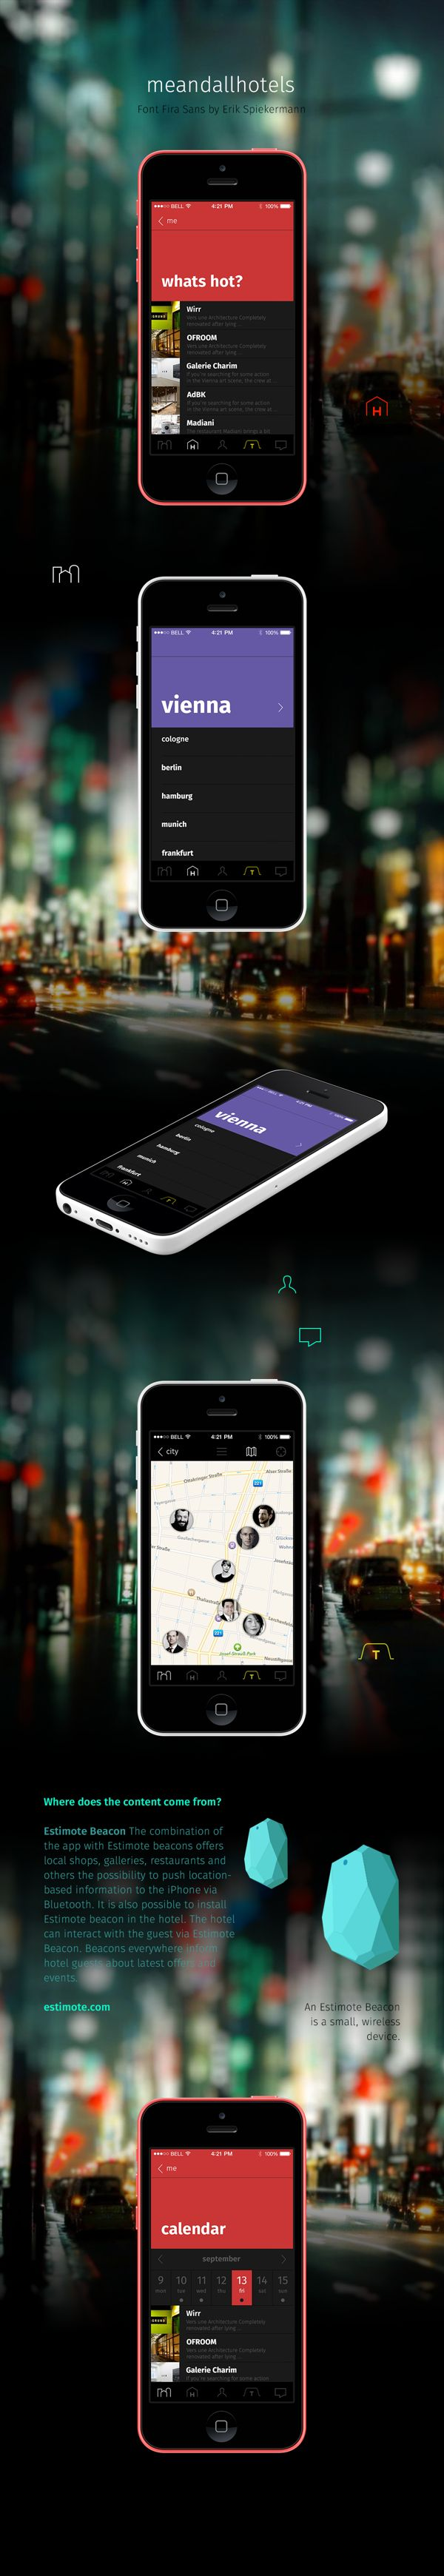 meandall app 2.0 by Conny Naumann, via Behance